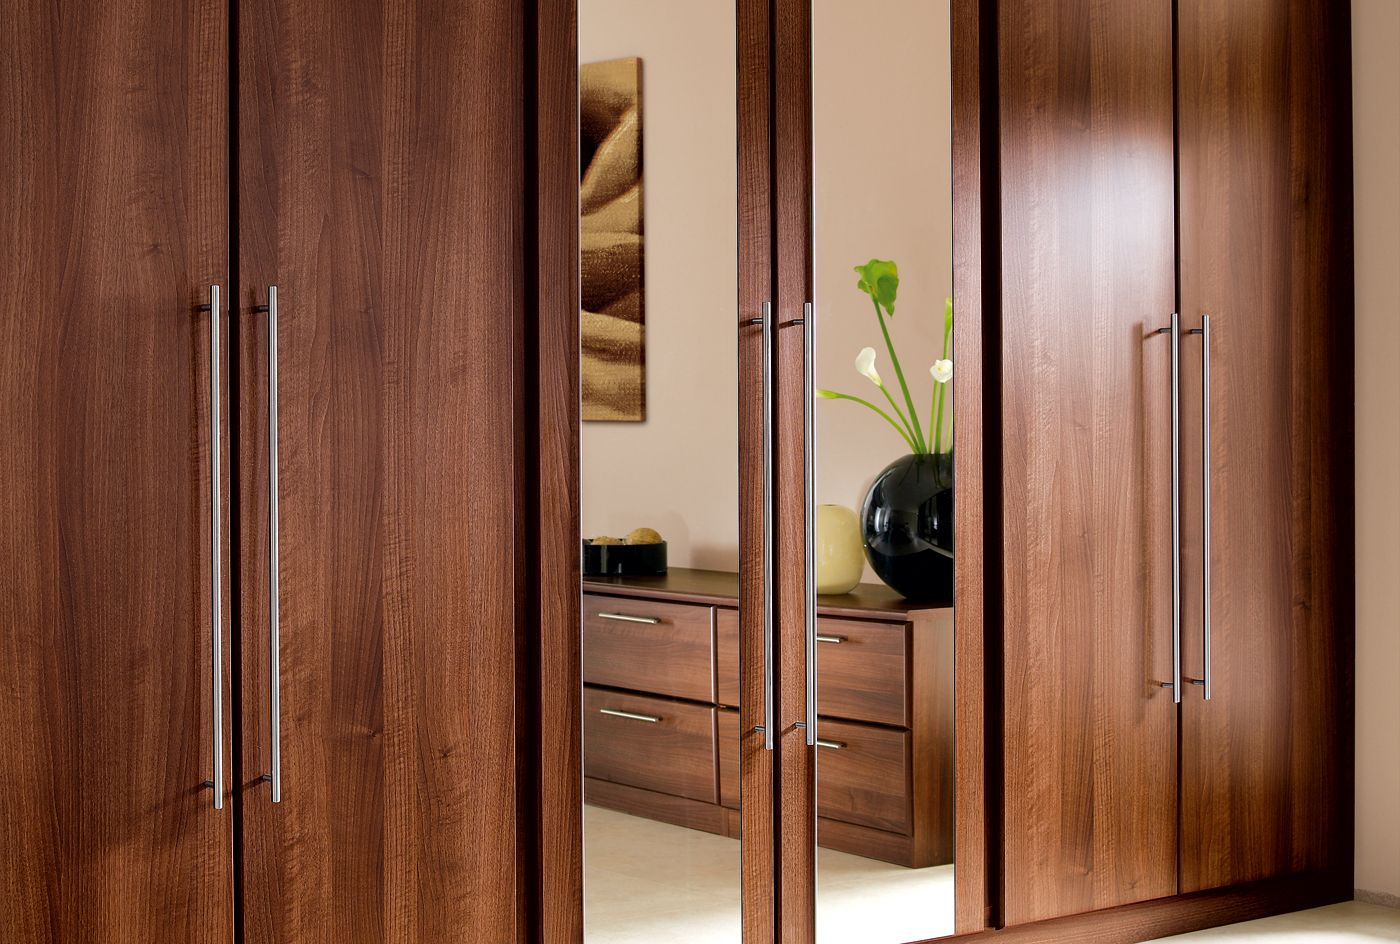 Mirror wardrobe doors are a wonderful feature of the